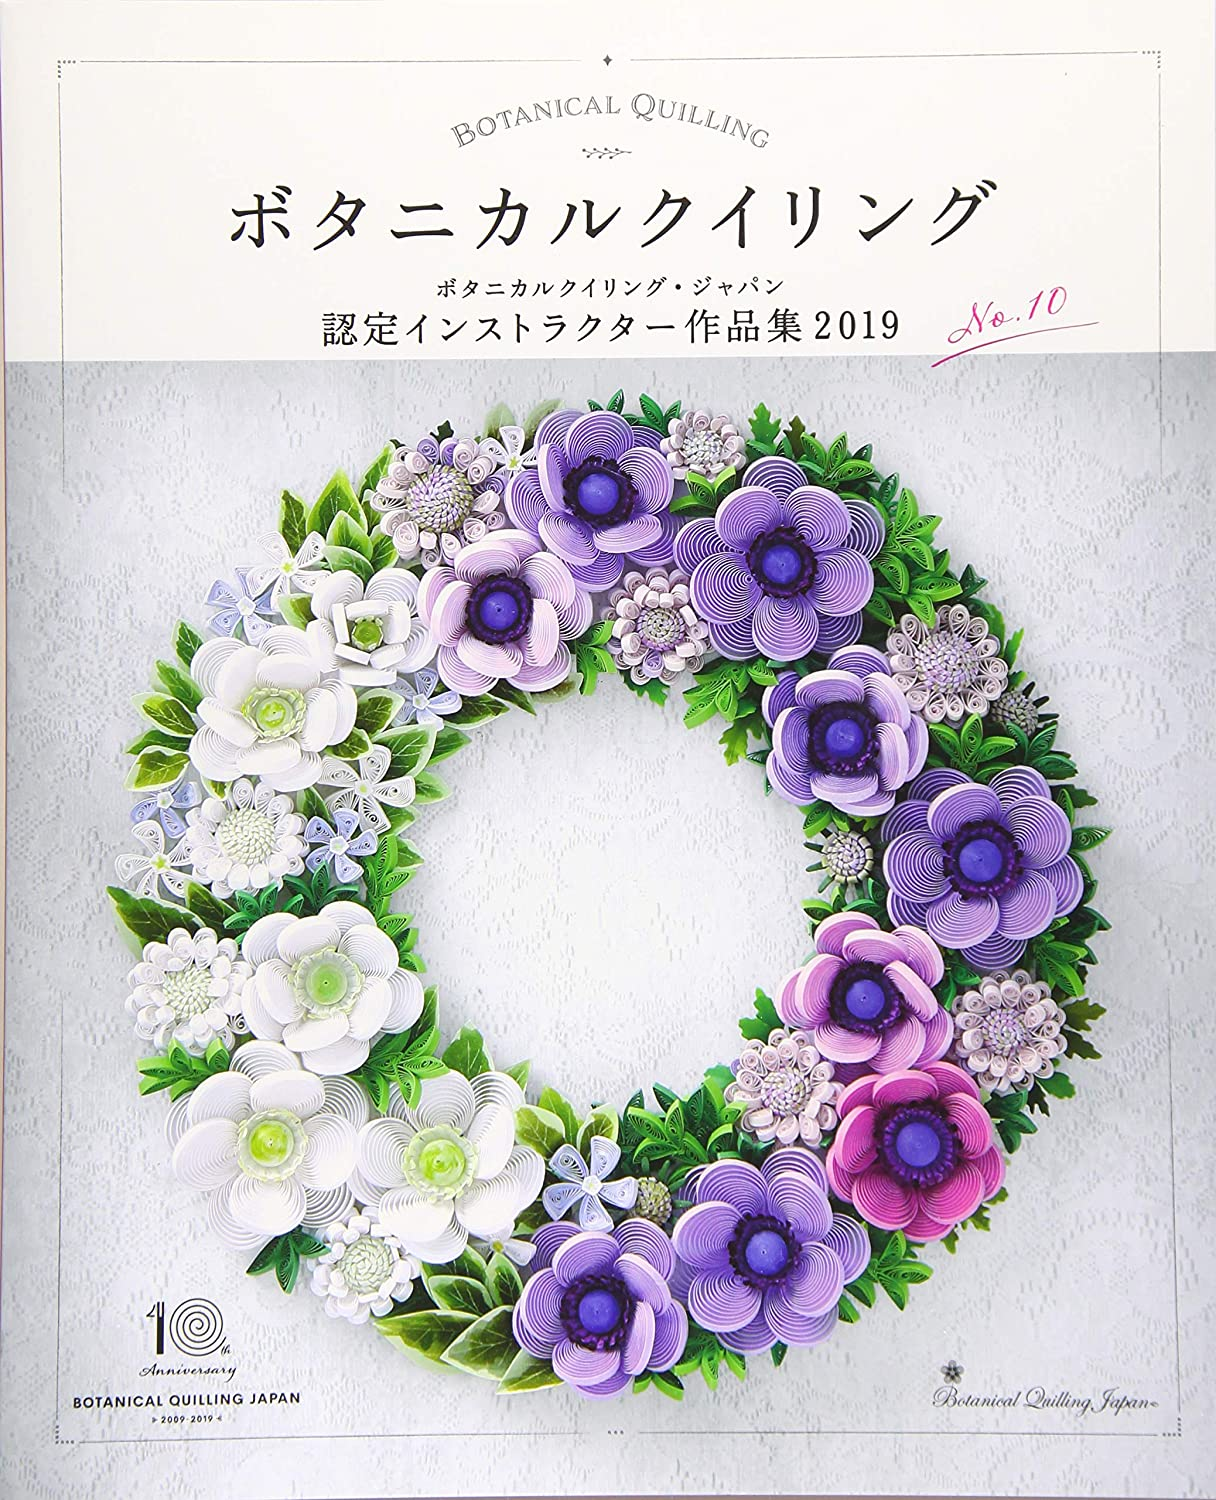 Botanical Quilling Japan Certified Instructor Works 2019